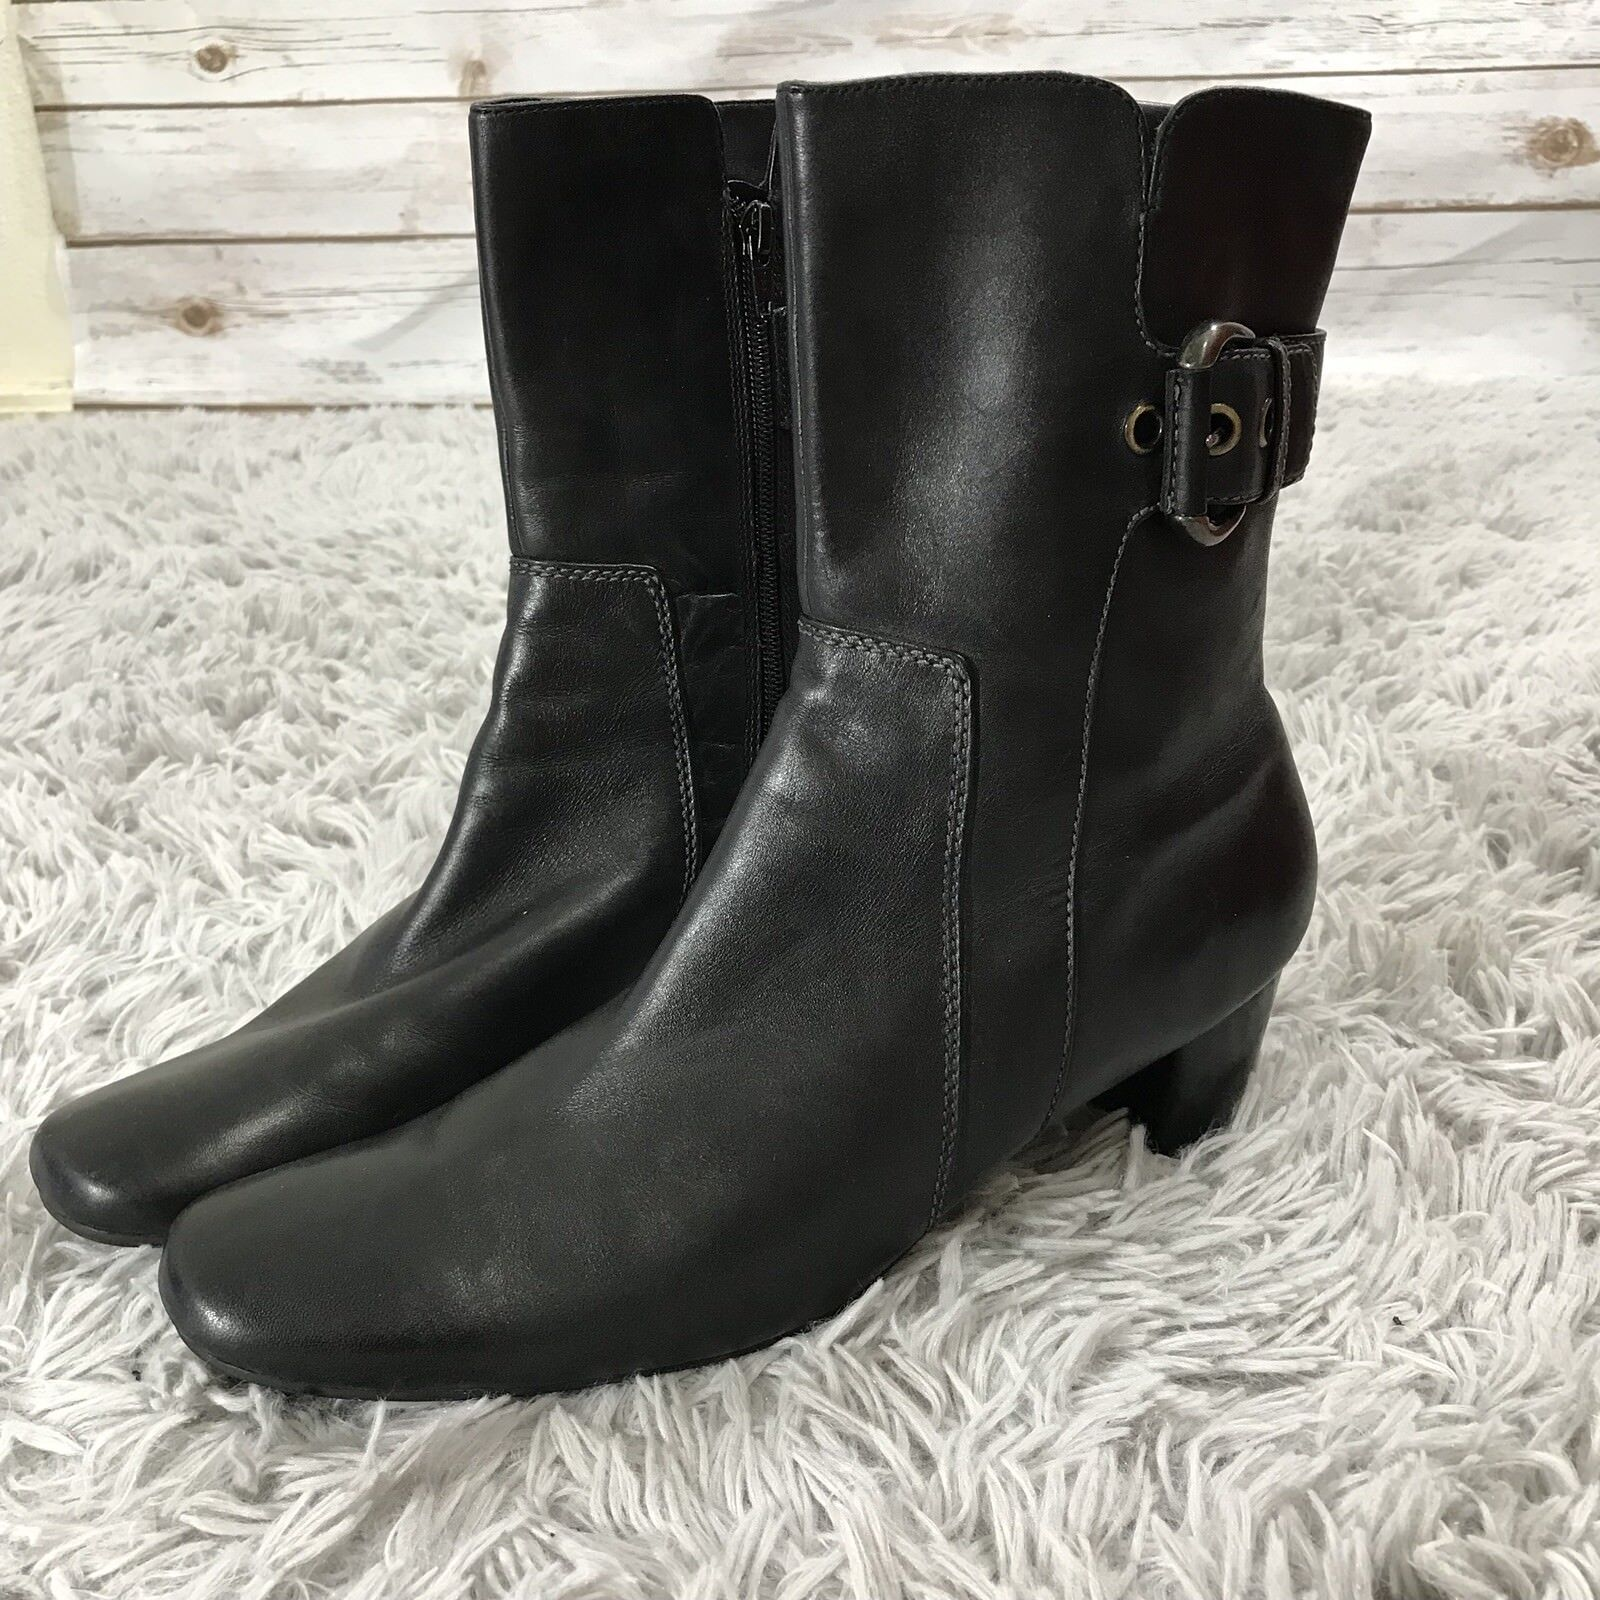 Ecco Black Leather Side Zip and Buckle Casual Ankle Boots Women's 42   11 - 11.5